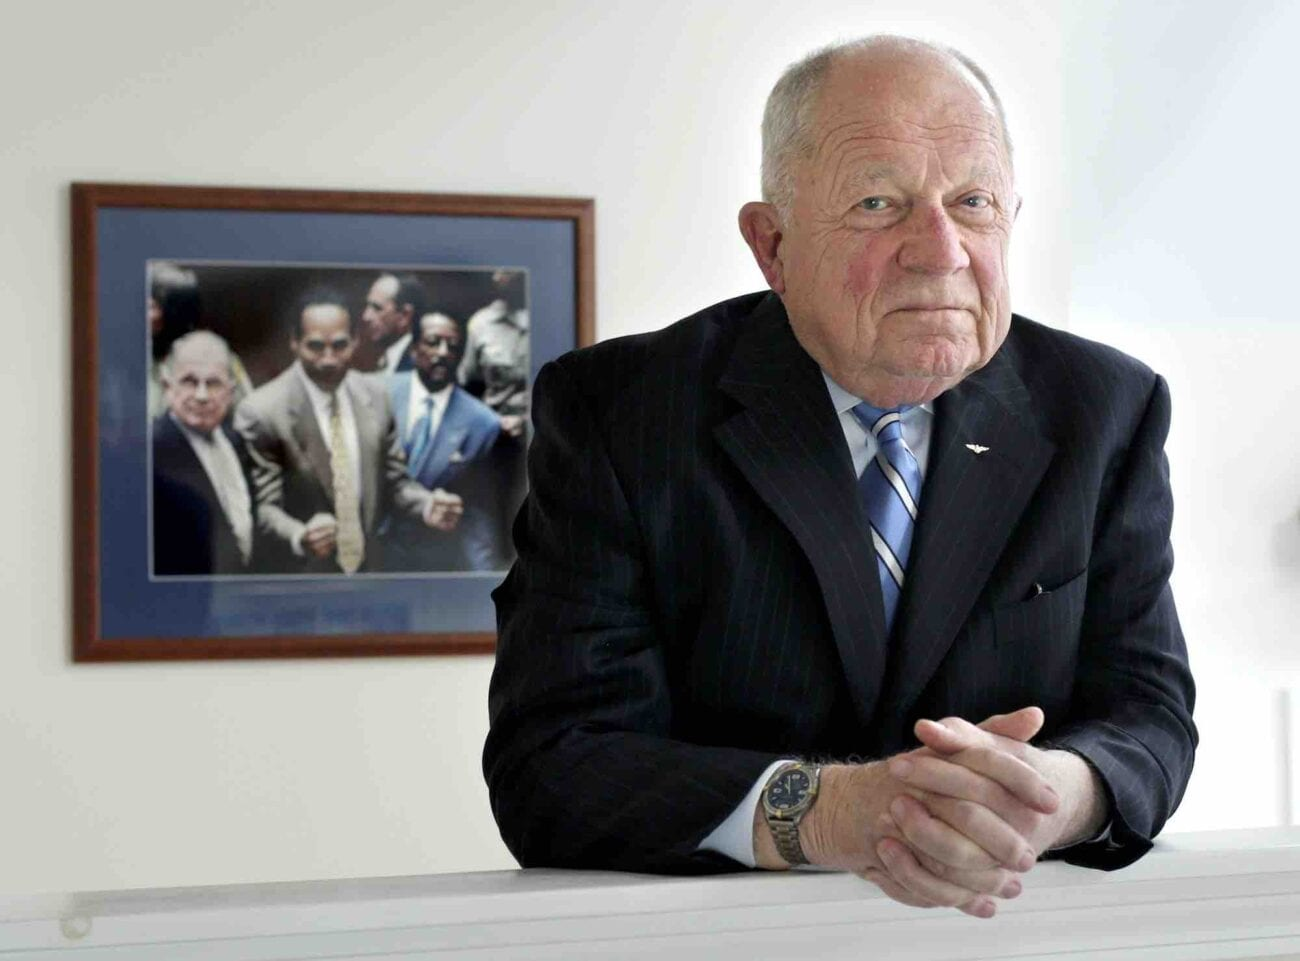 Famed trial lawyer F. Lee Bailey dies at the age of 87. Look through his most famous cases from Sam Sheppard to O.J. Simpson.